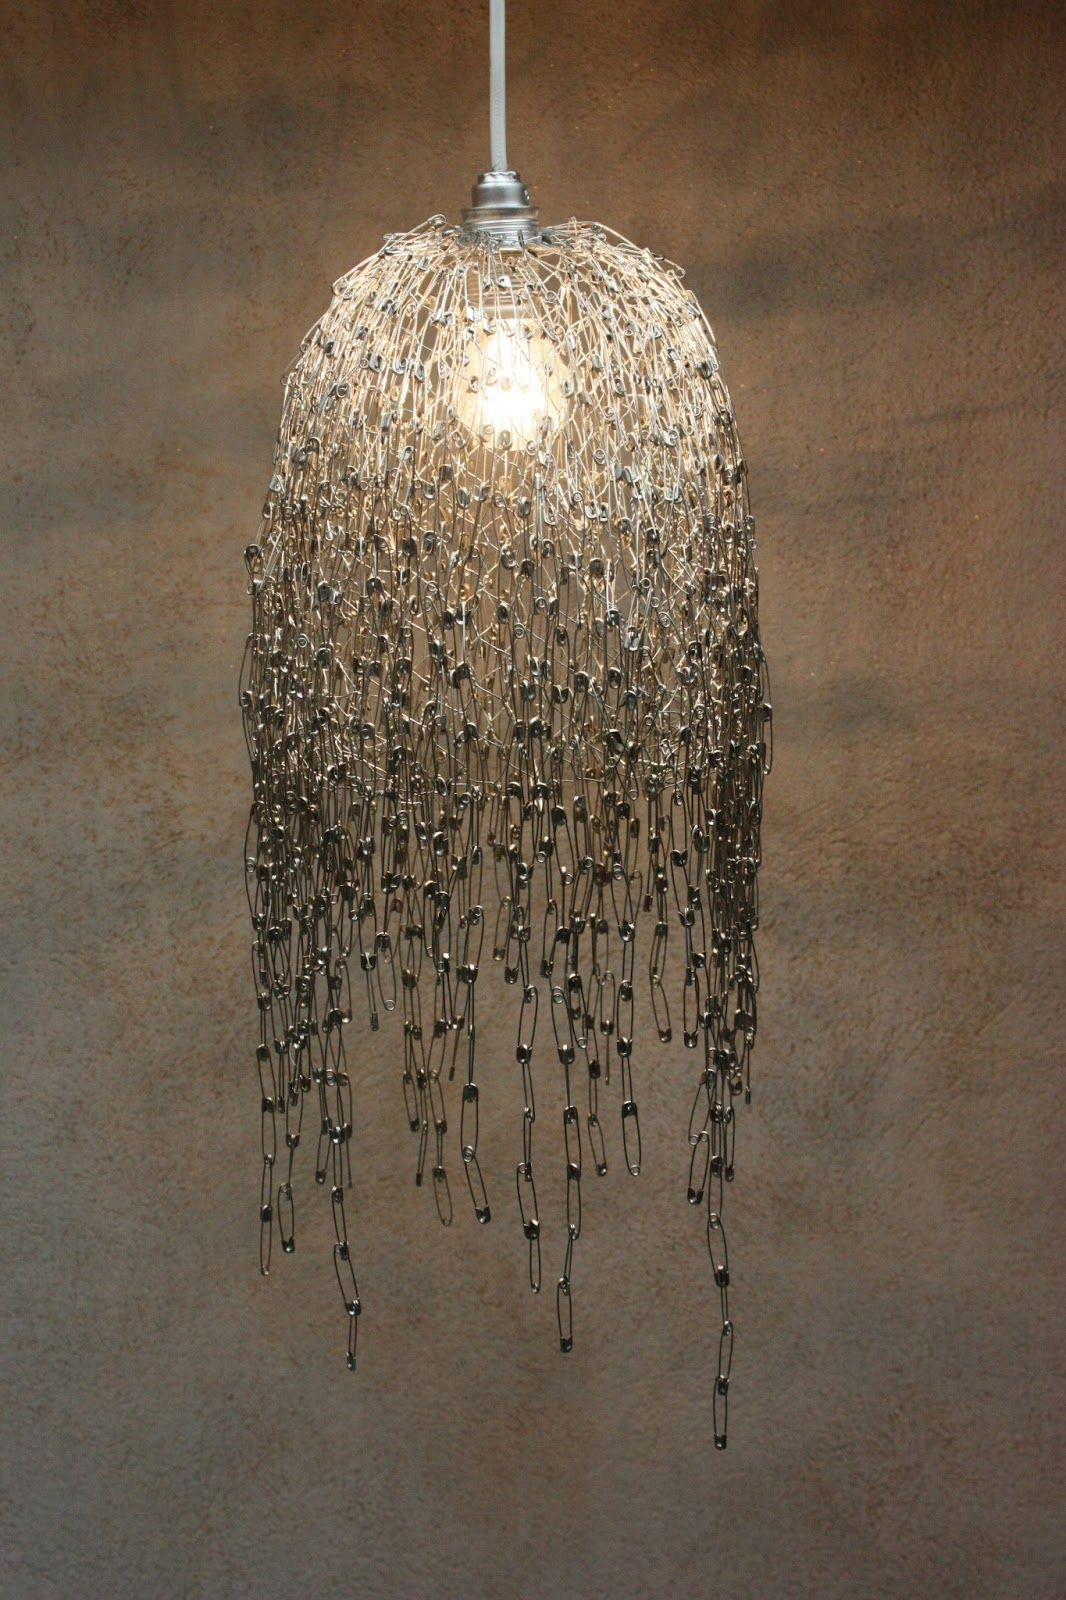 Inspire me diy safety pin lamp lights pinterest safety pins diy safety pin light materials safety pins pieces chicken wire wire bulb fitting cable plug bulb pliers pincers it would look nice with golden painted greentooth Image collections